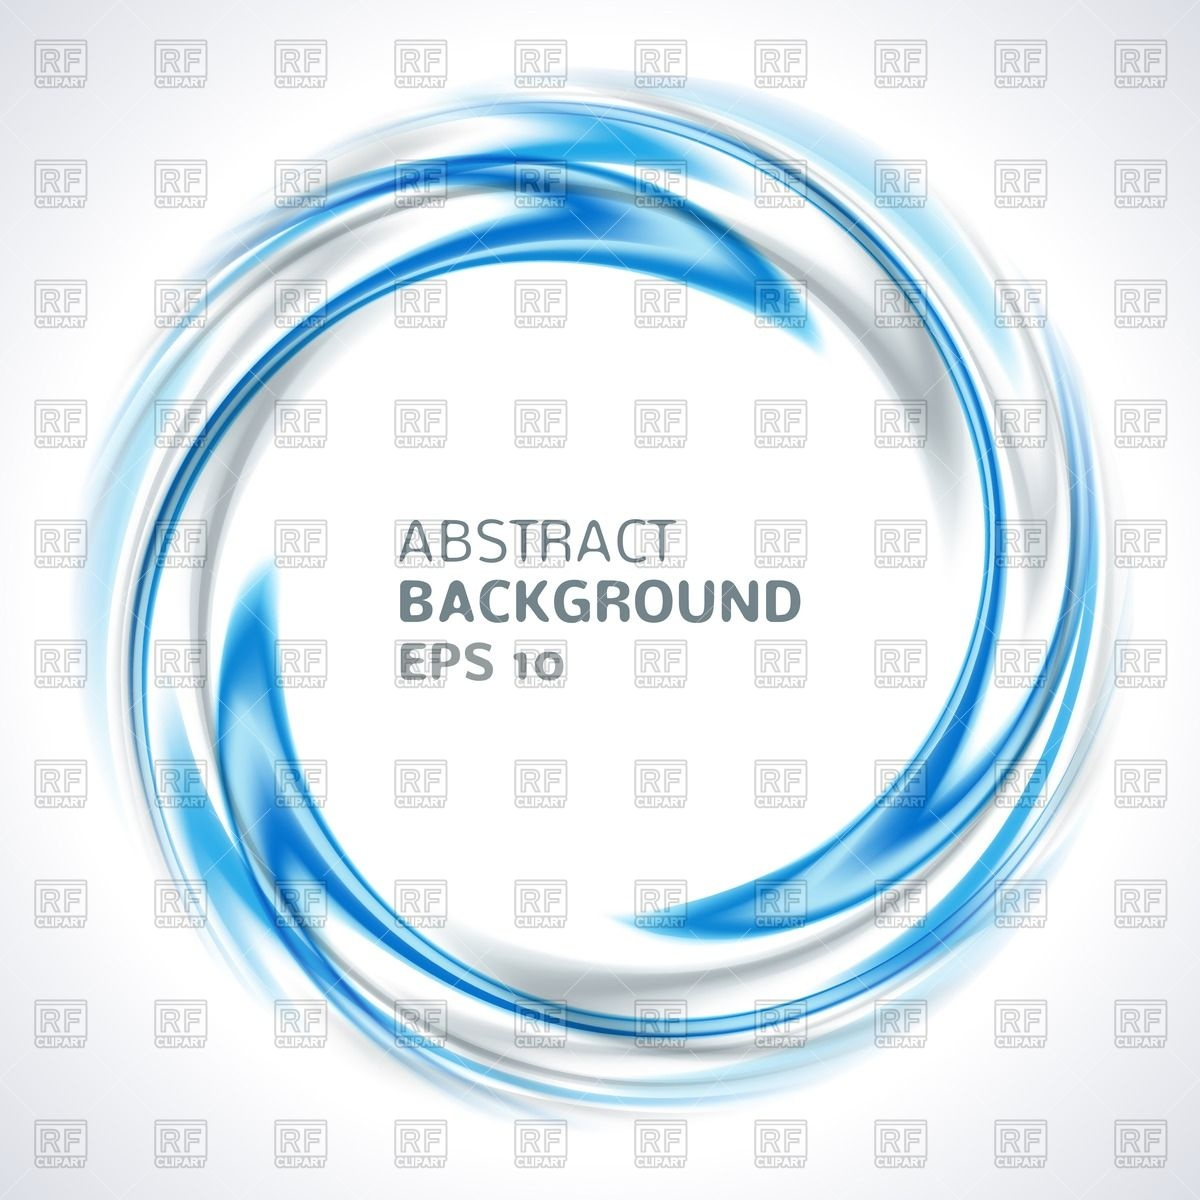 Abstract blue and silver swirl circle Vector Image #41070.